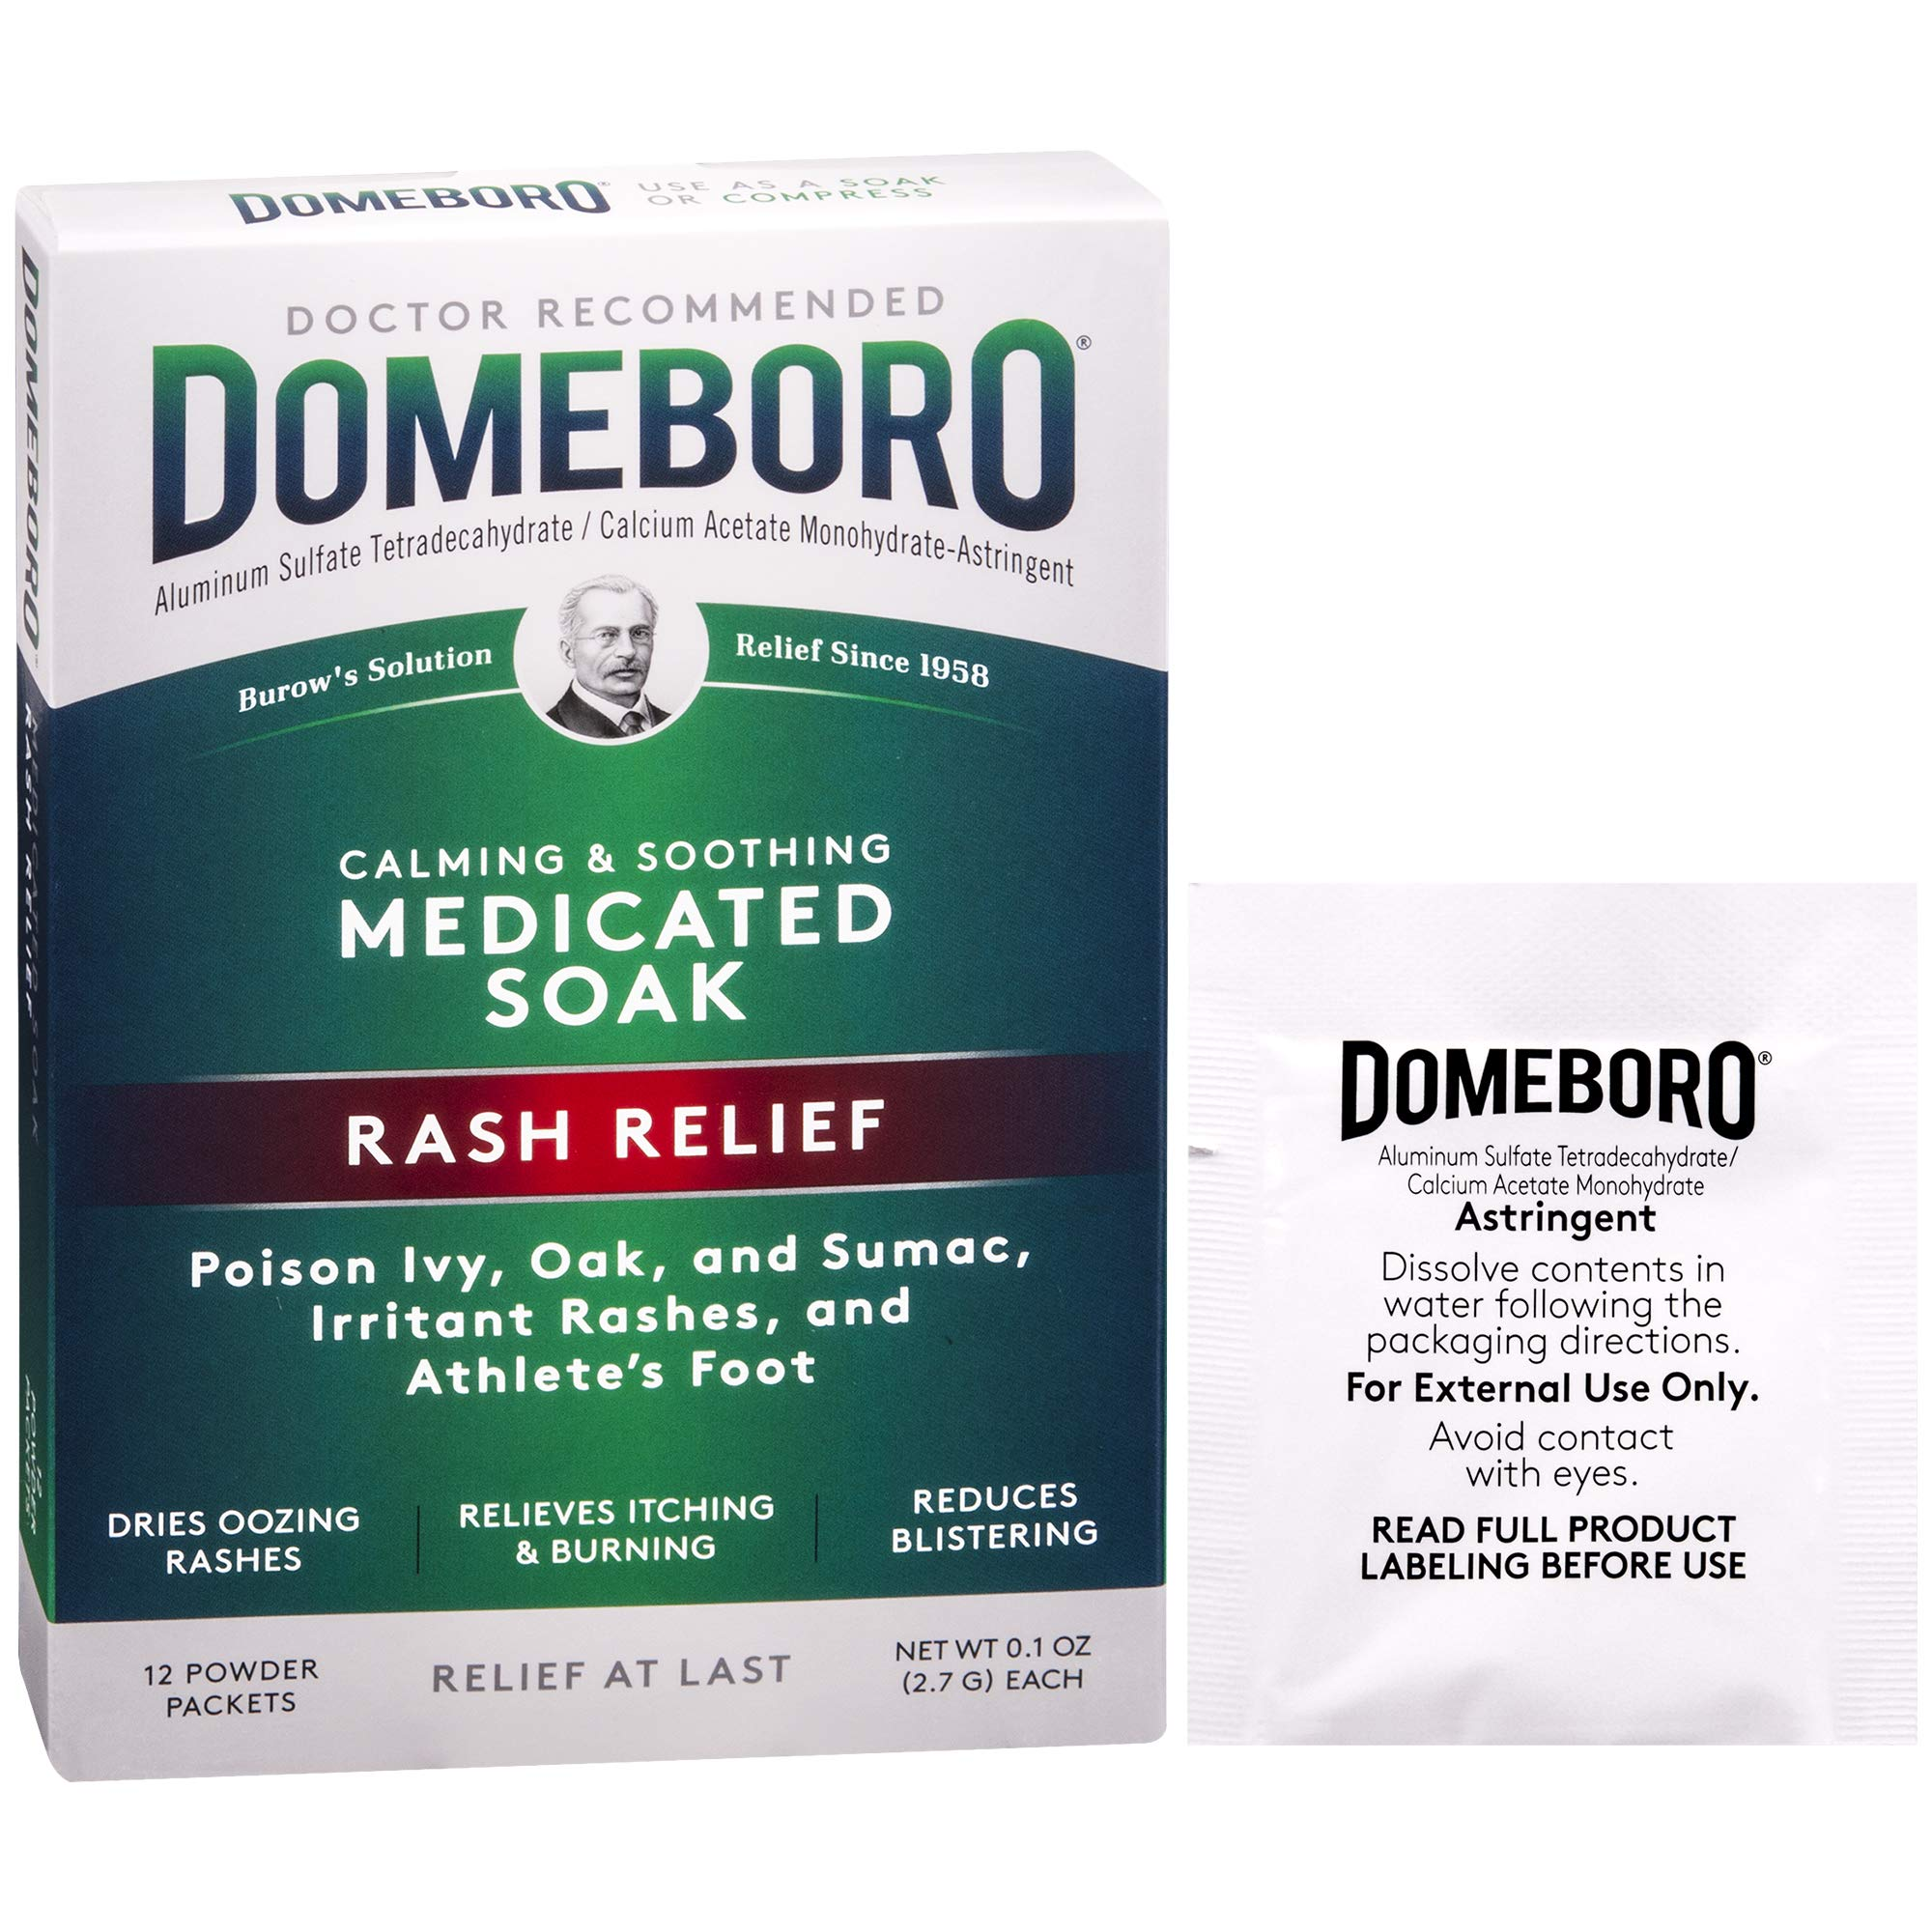 Domeboro Medicated Soak Rash Relief (Burow's Solution) 12 Powder Packets by Domeboro